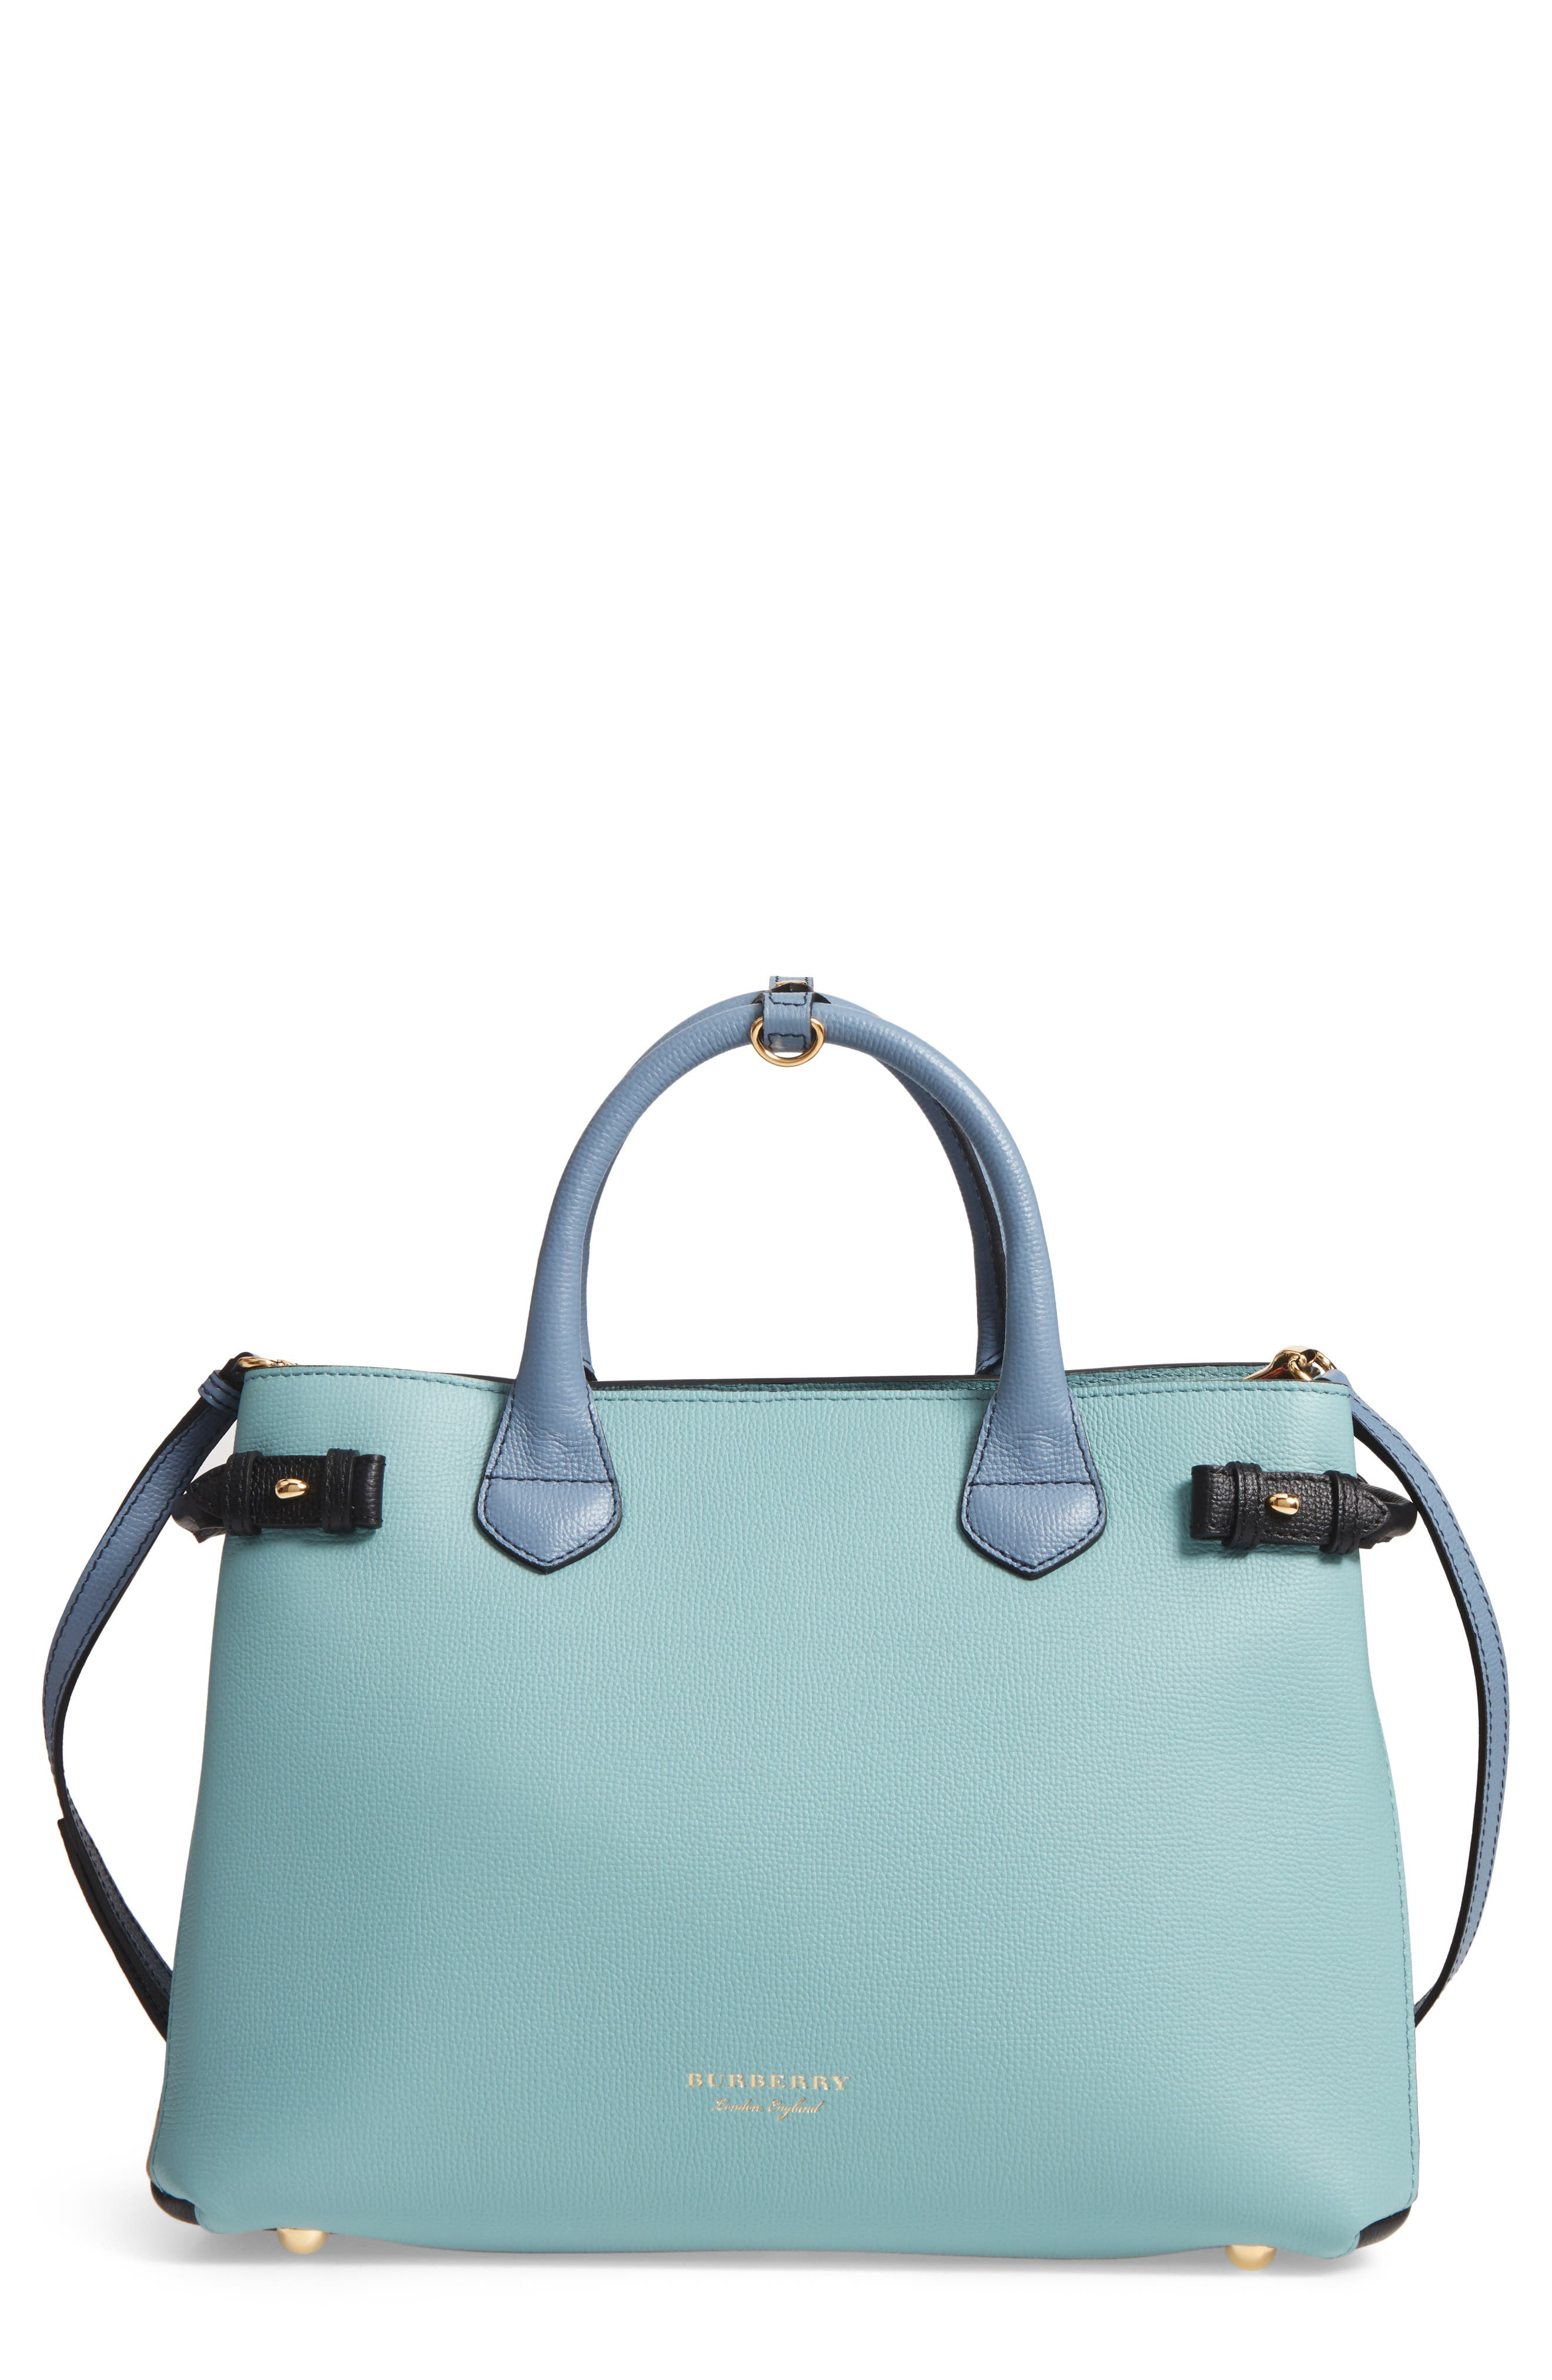 Medium Banner House Check & Leather Tote,                         Main,                         color, 453